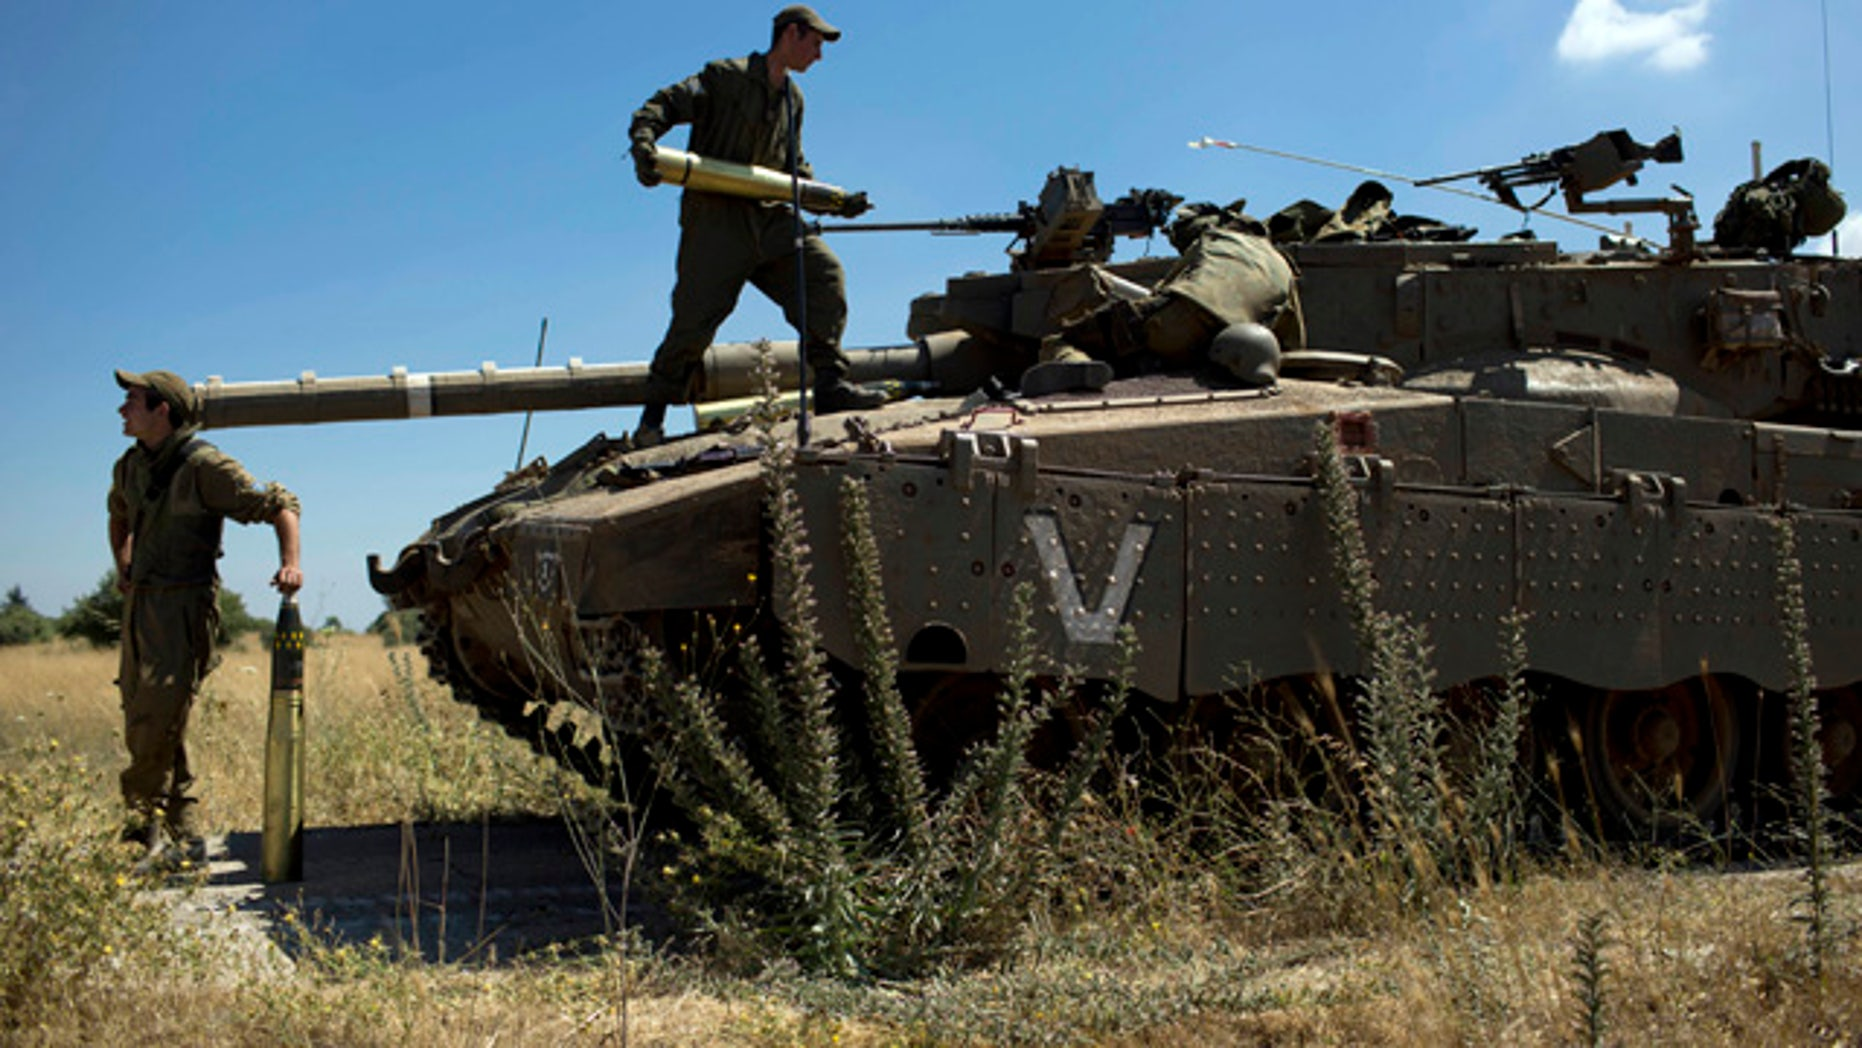 June 22, 2014: Israeli soldiers load shells in their tank following the first death on the Israeli side of the Golan since the Syrian civil war erupted more than three years ago, near the Israeli village of Alonei Habashan, in the area of Tel Hazeka, close to the Quneitra border crossing in the Israeli-controlled Golan Heights. (AP Photo/Oded Balilty)